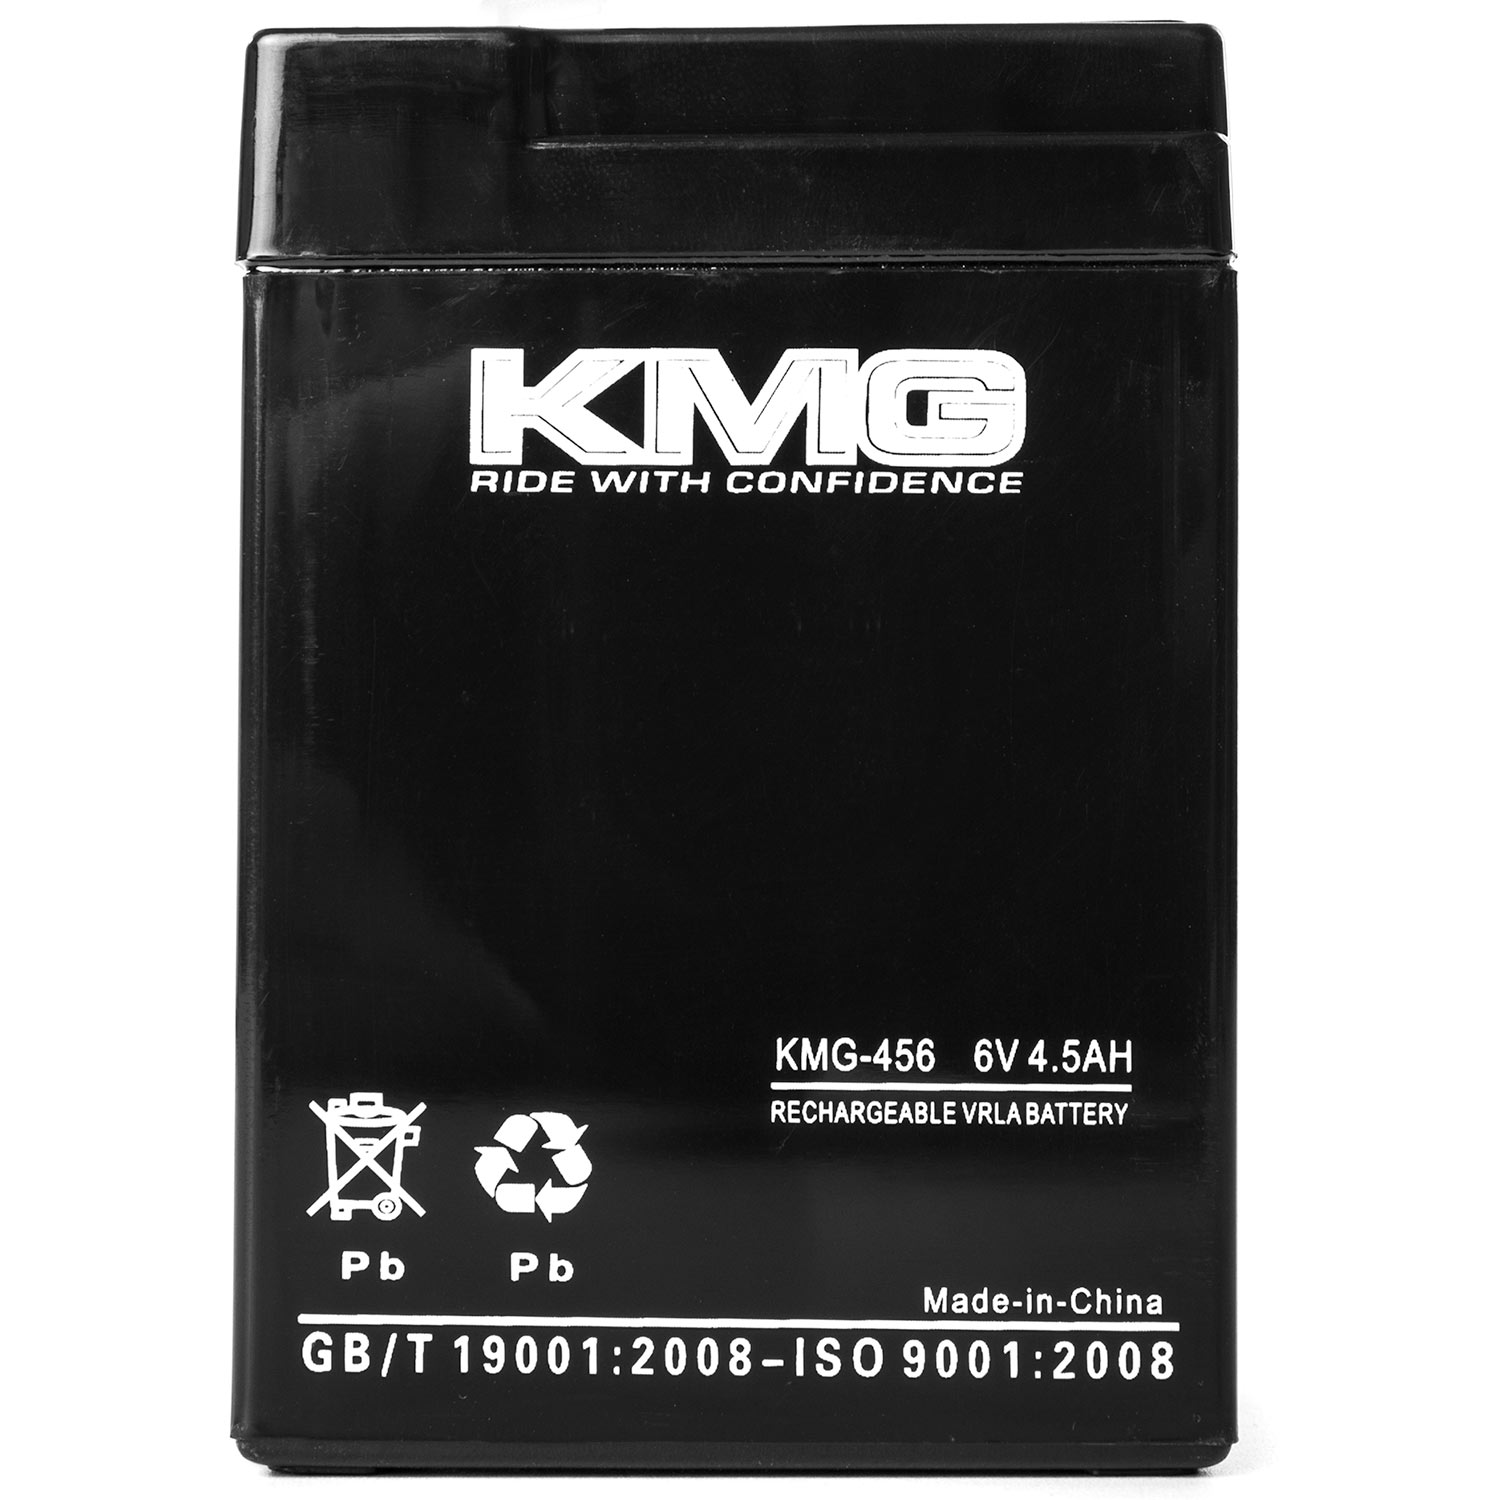 KMG 6 Volts 4.5Ah Replacement Battery for Eagle Pitcher CFM6V4.6 - image 1 of 3